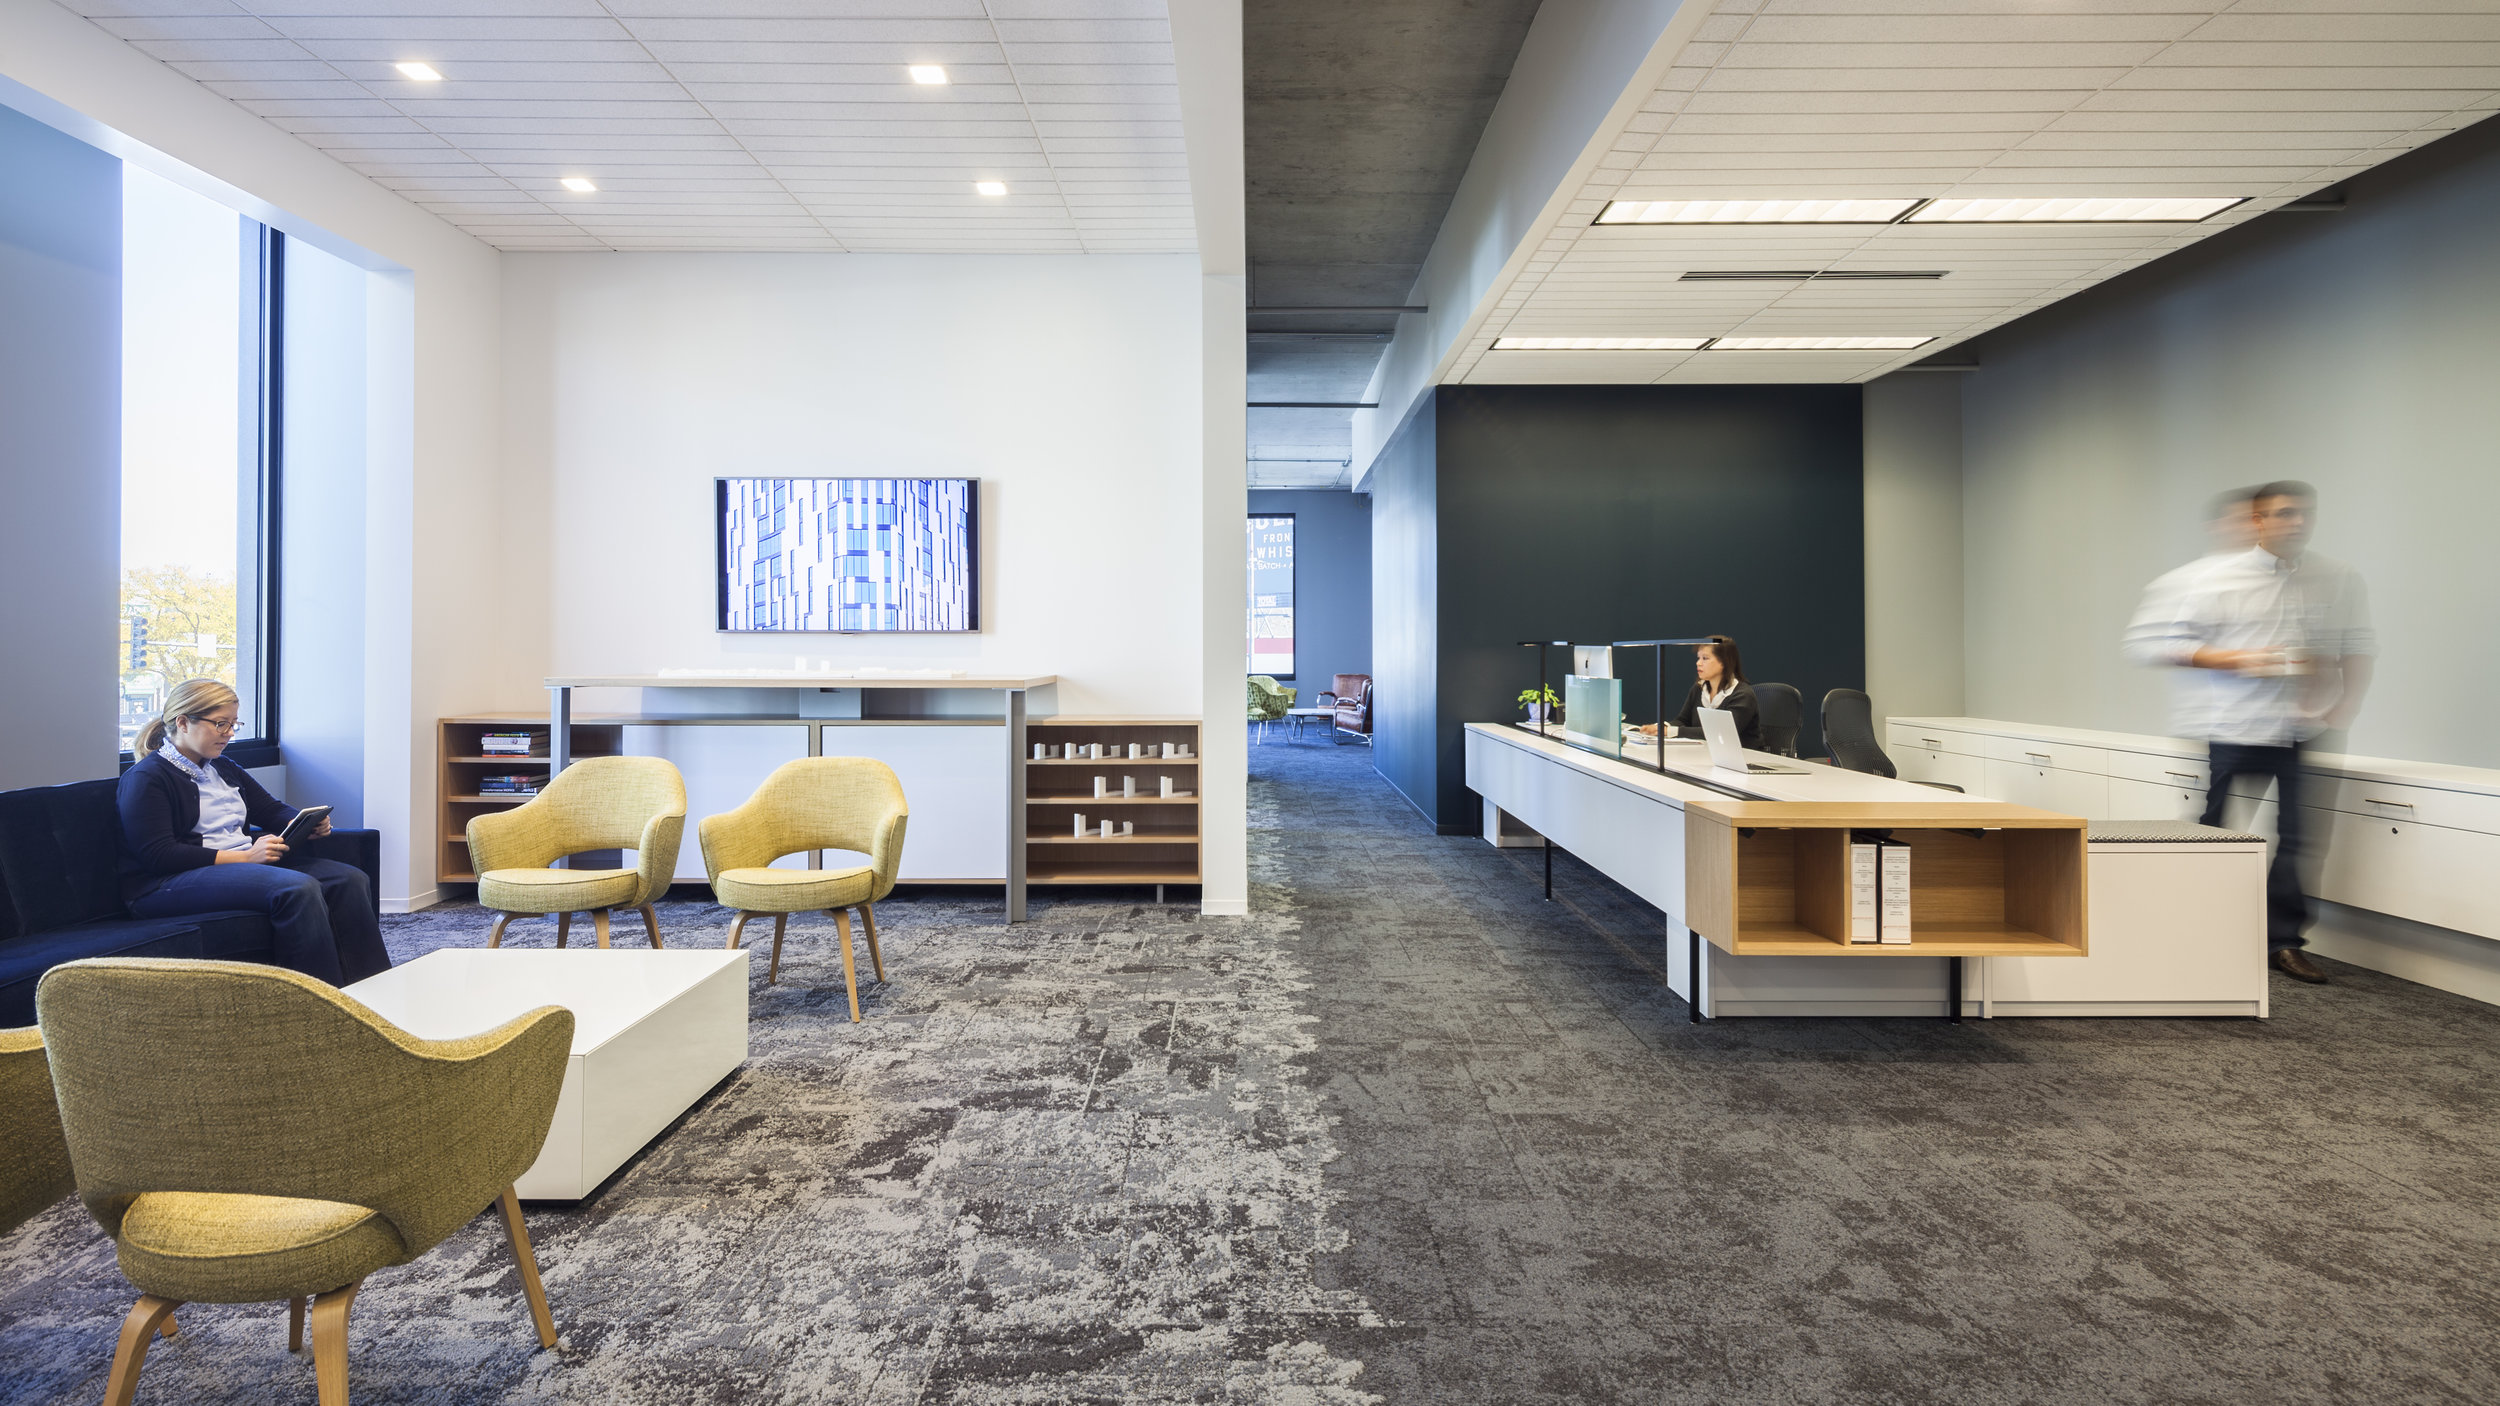 1611+W+Division+Offices_1_00229_03.jpg